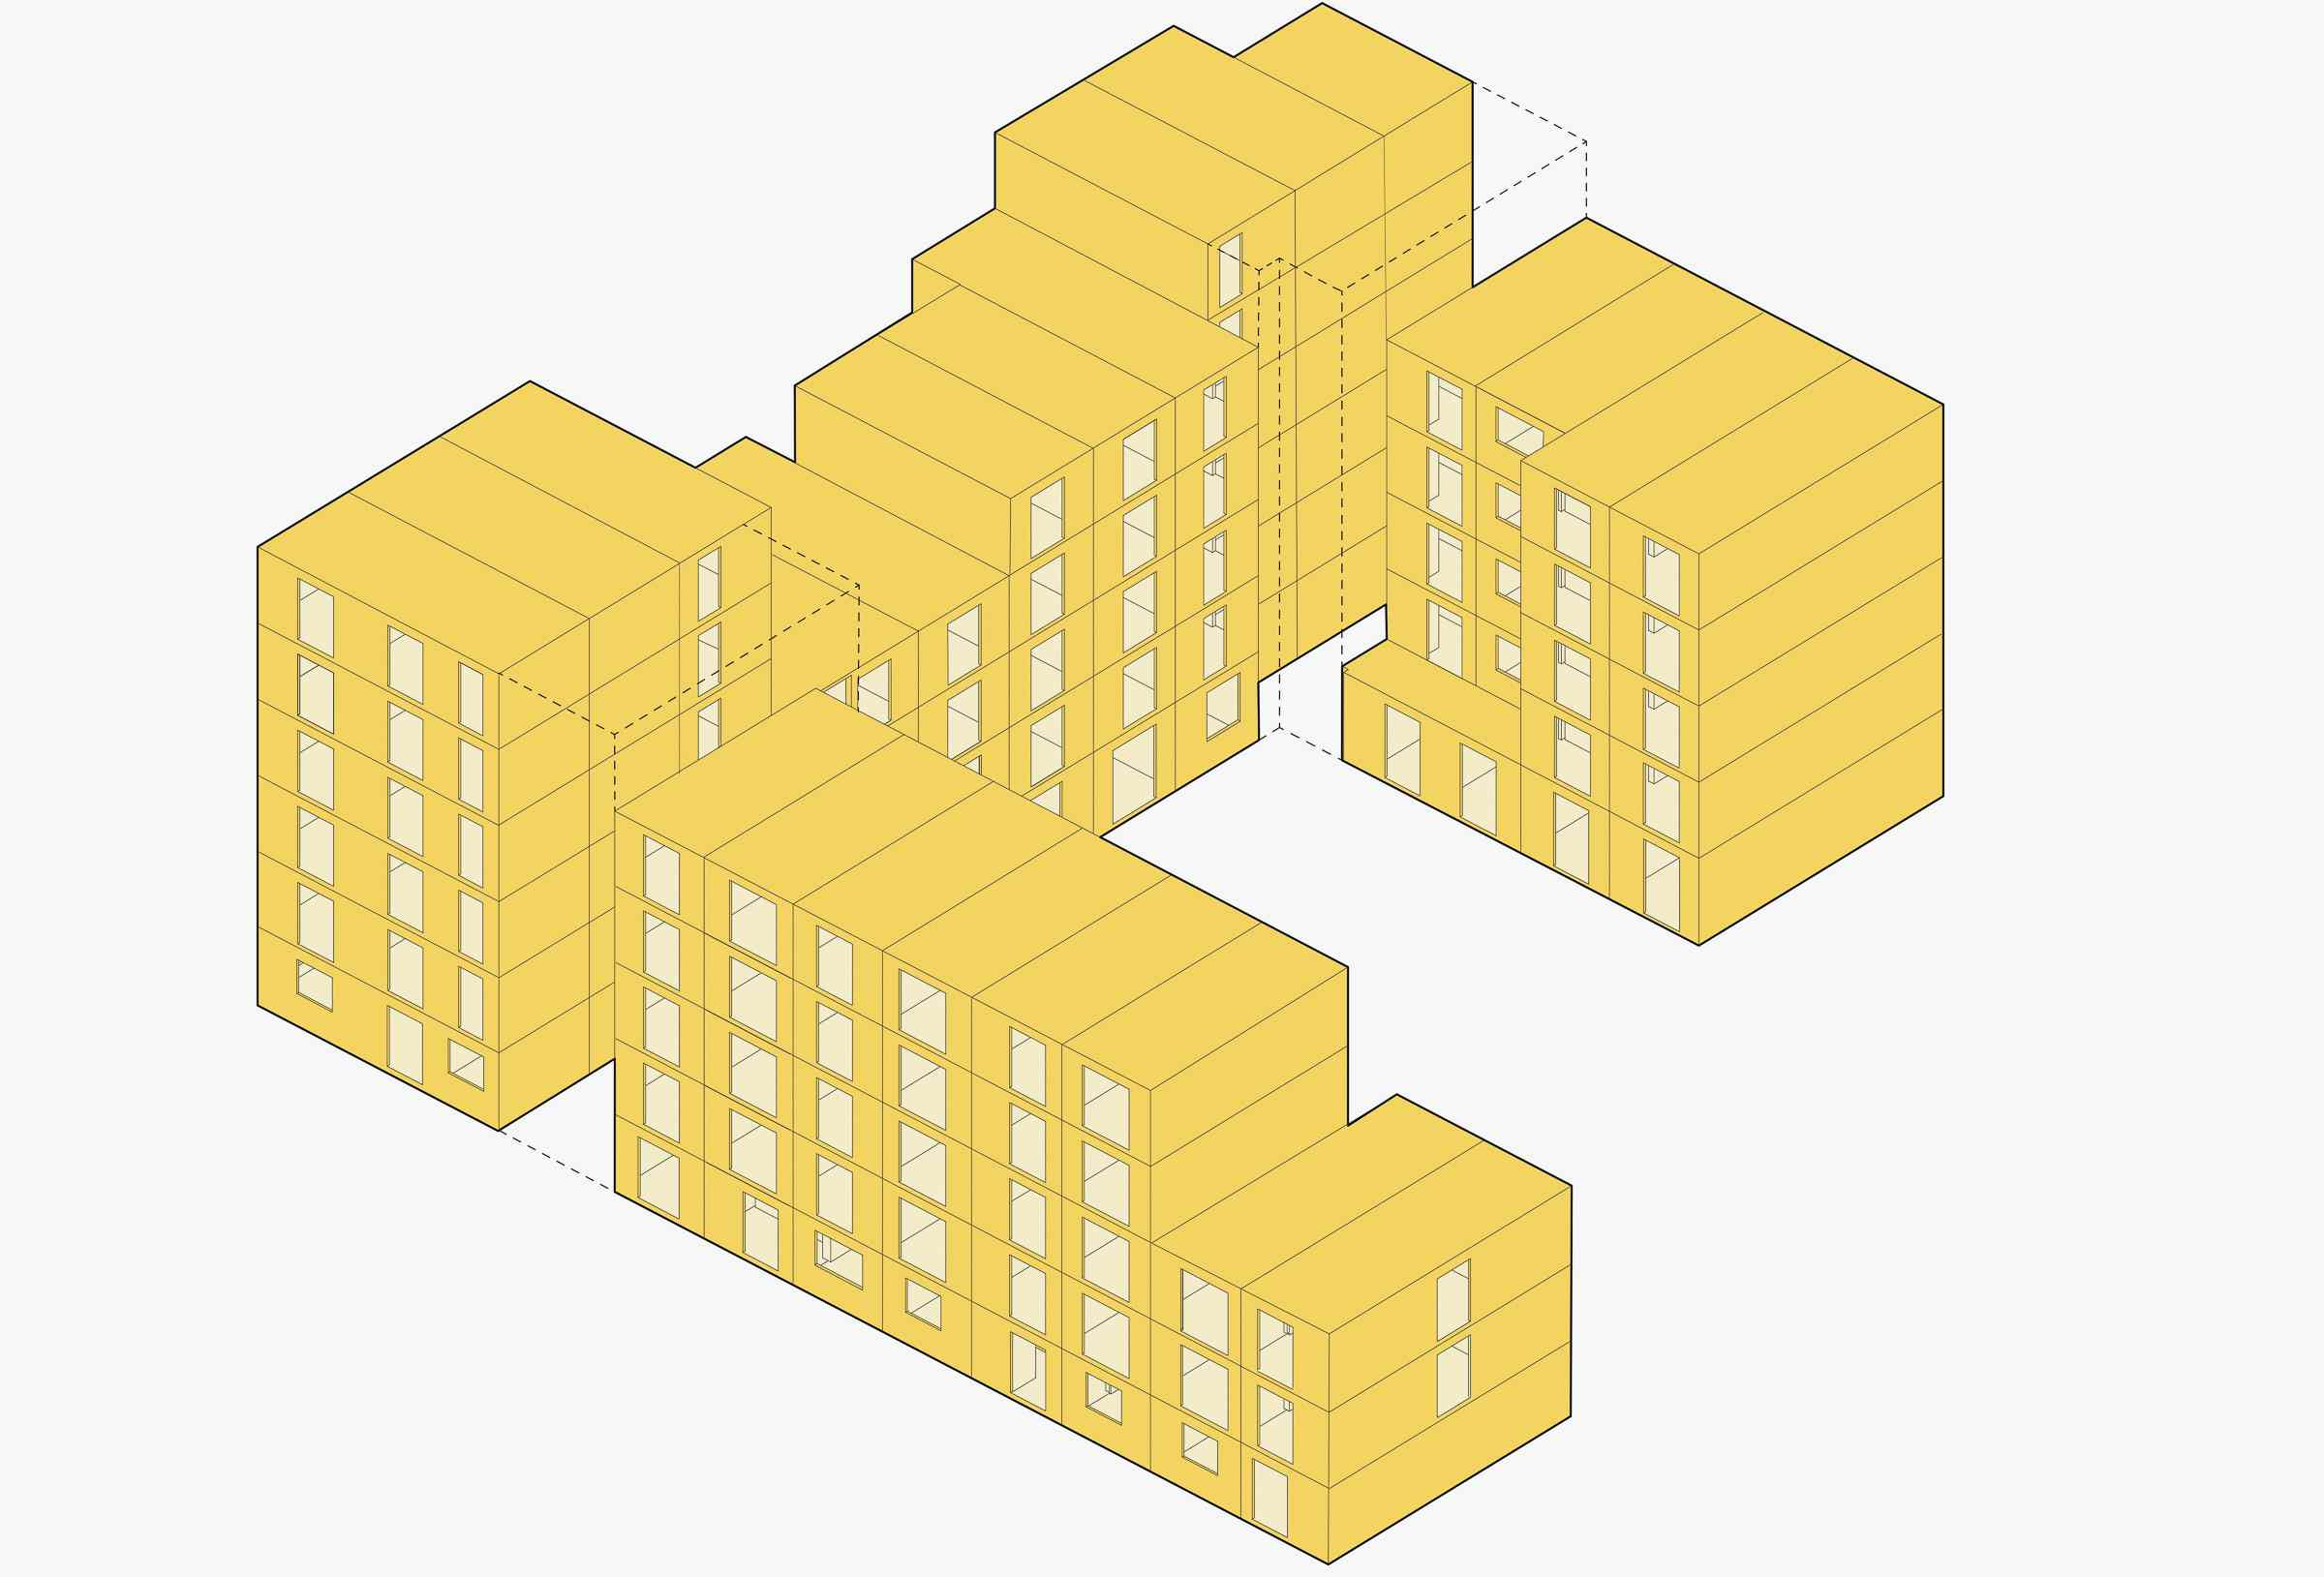 Diagram of stacked boxes